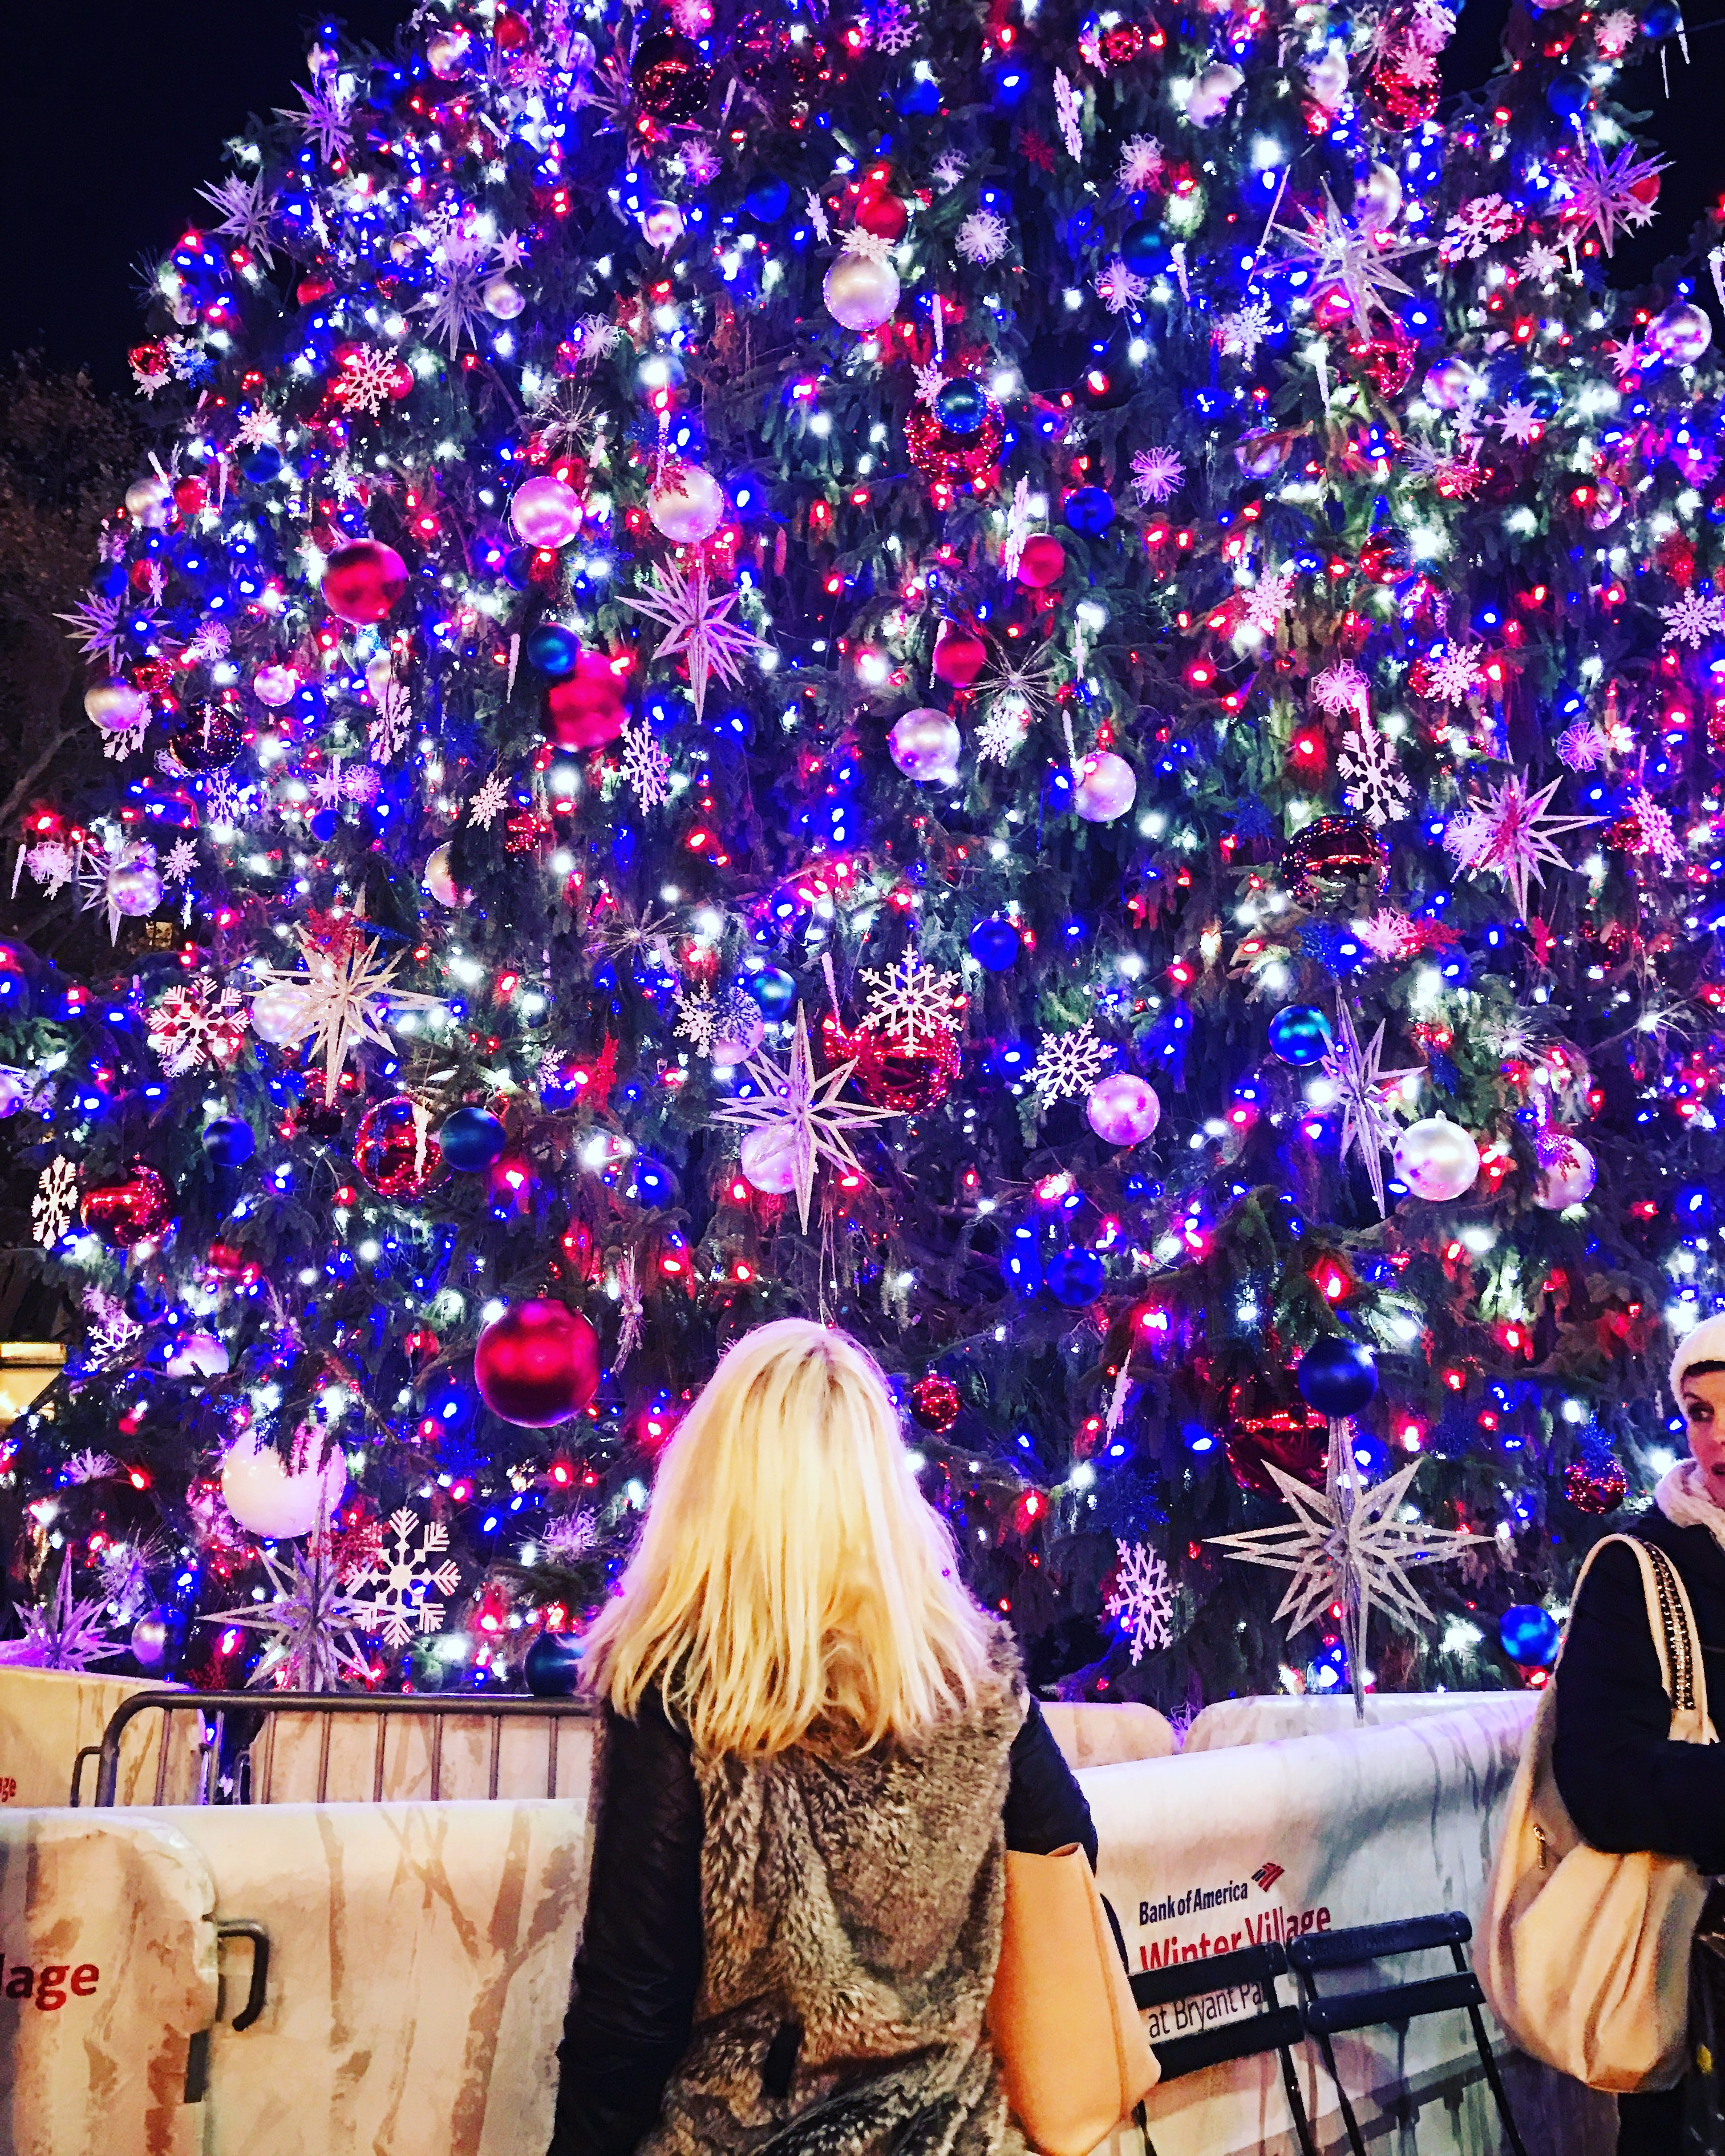 Winter at Bryant Park: The Tree Lighting